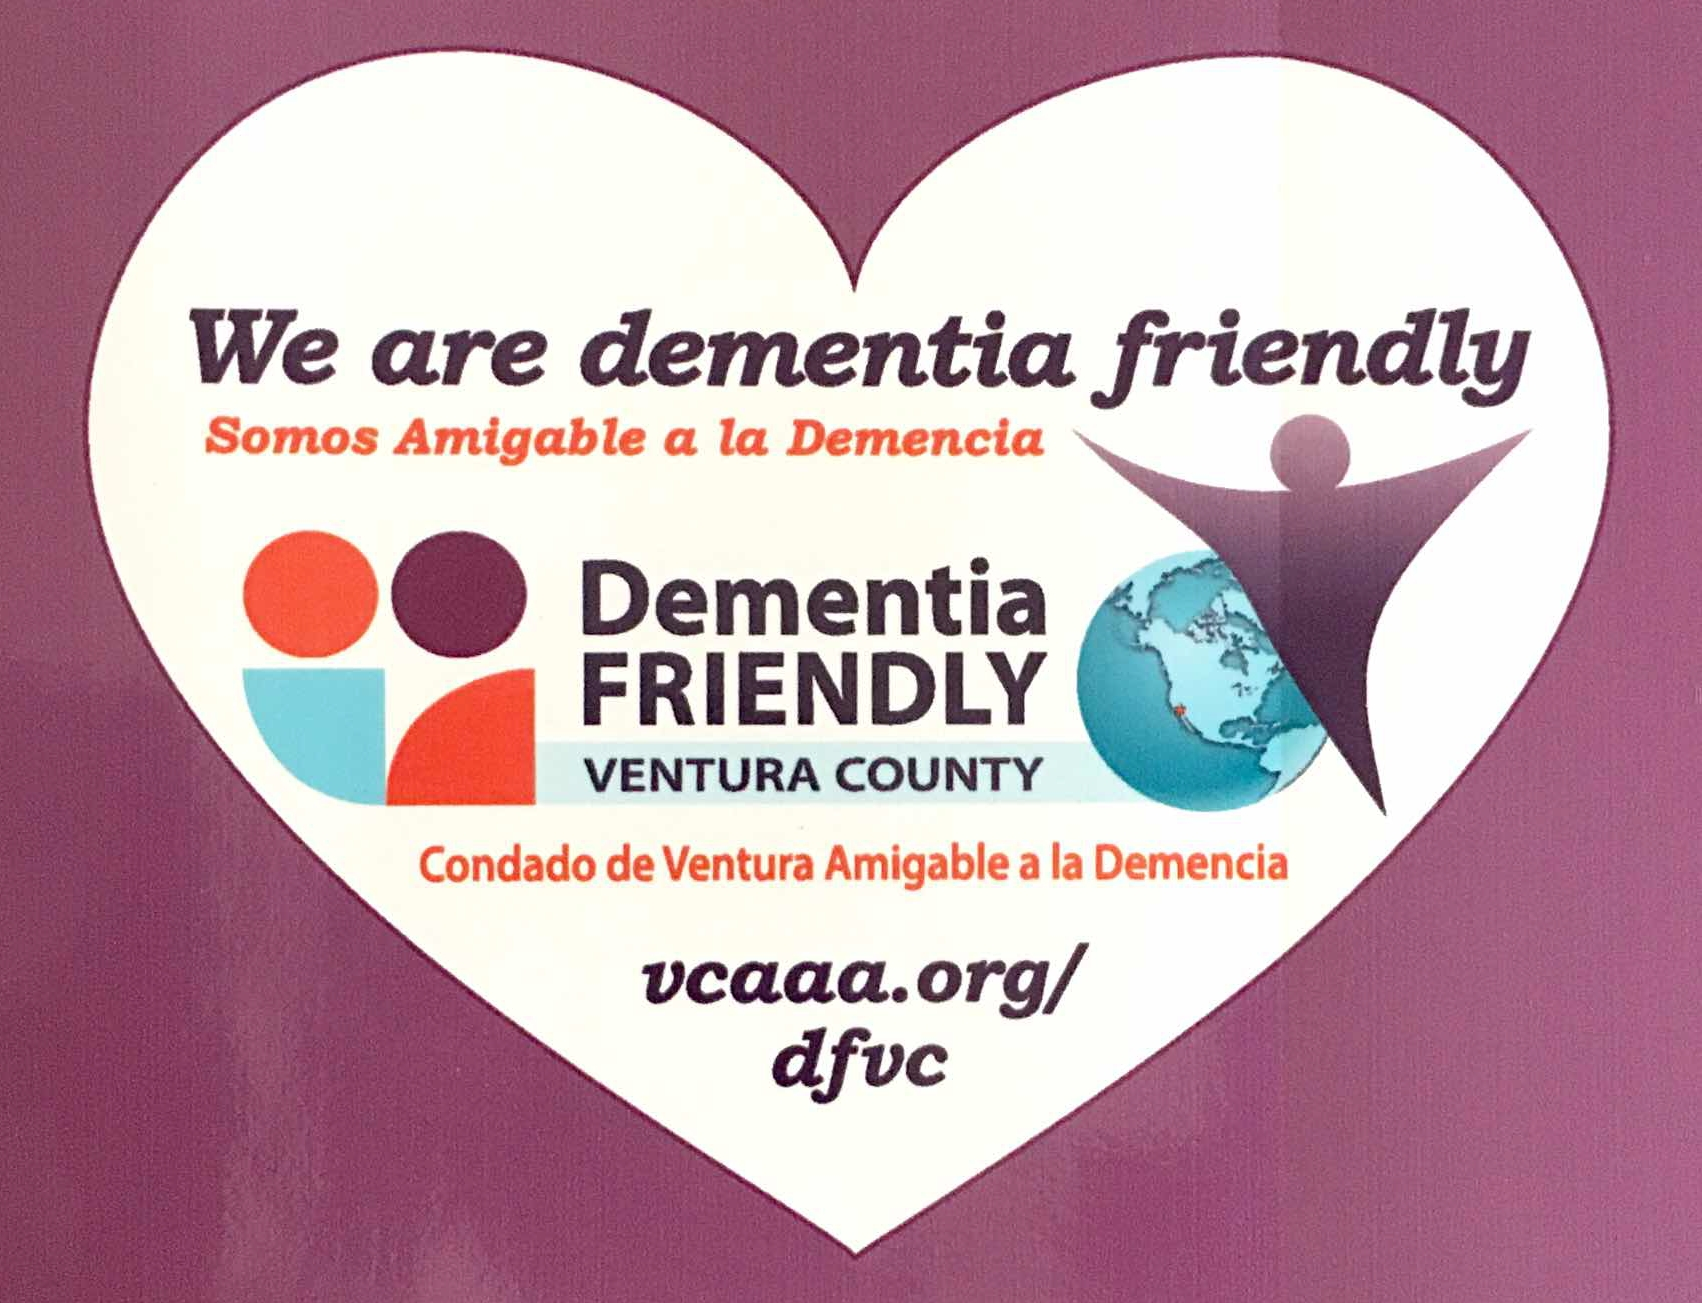 Dementia-Friendly Ventura County logo